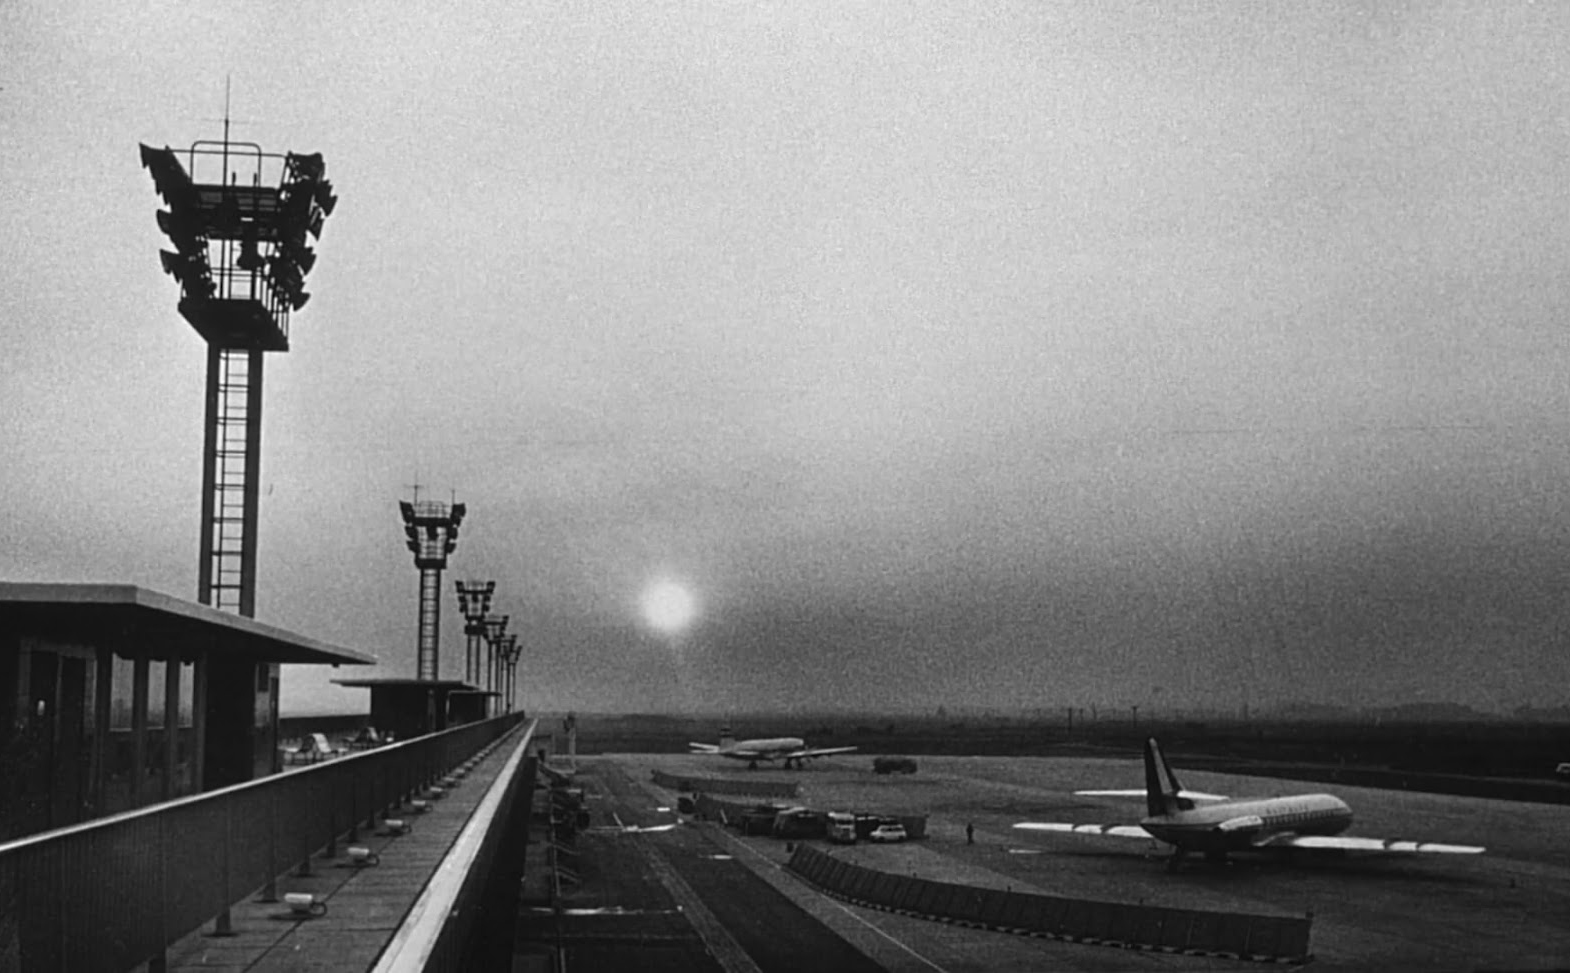 La Jetée photogram - Orley airport